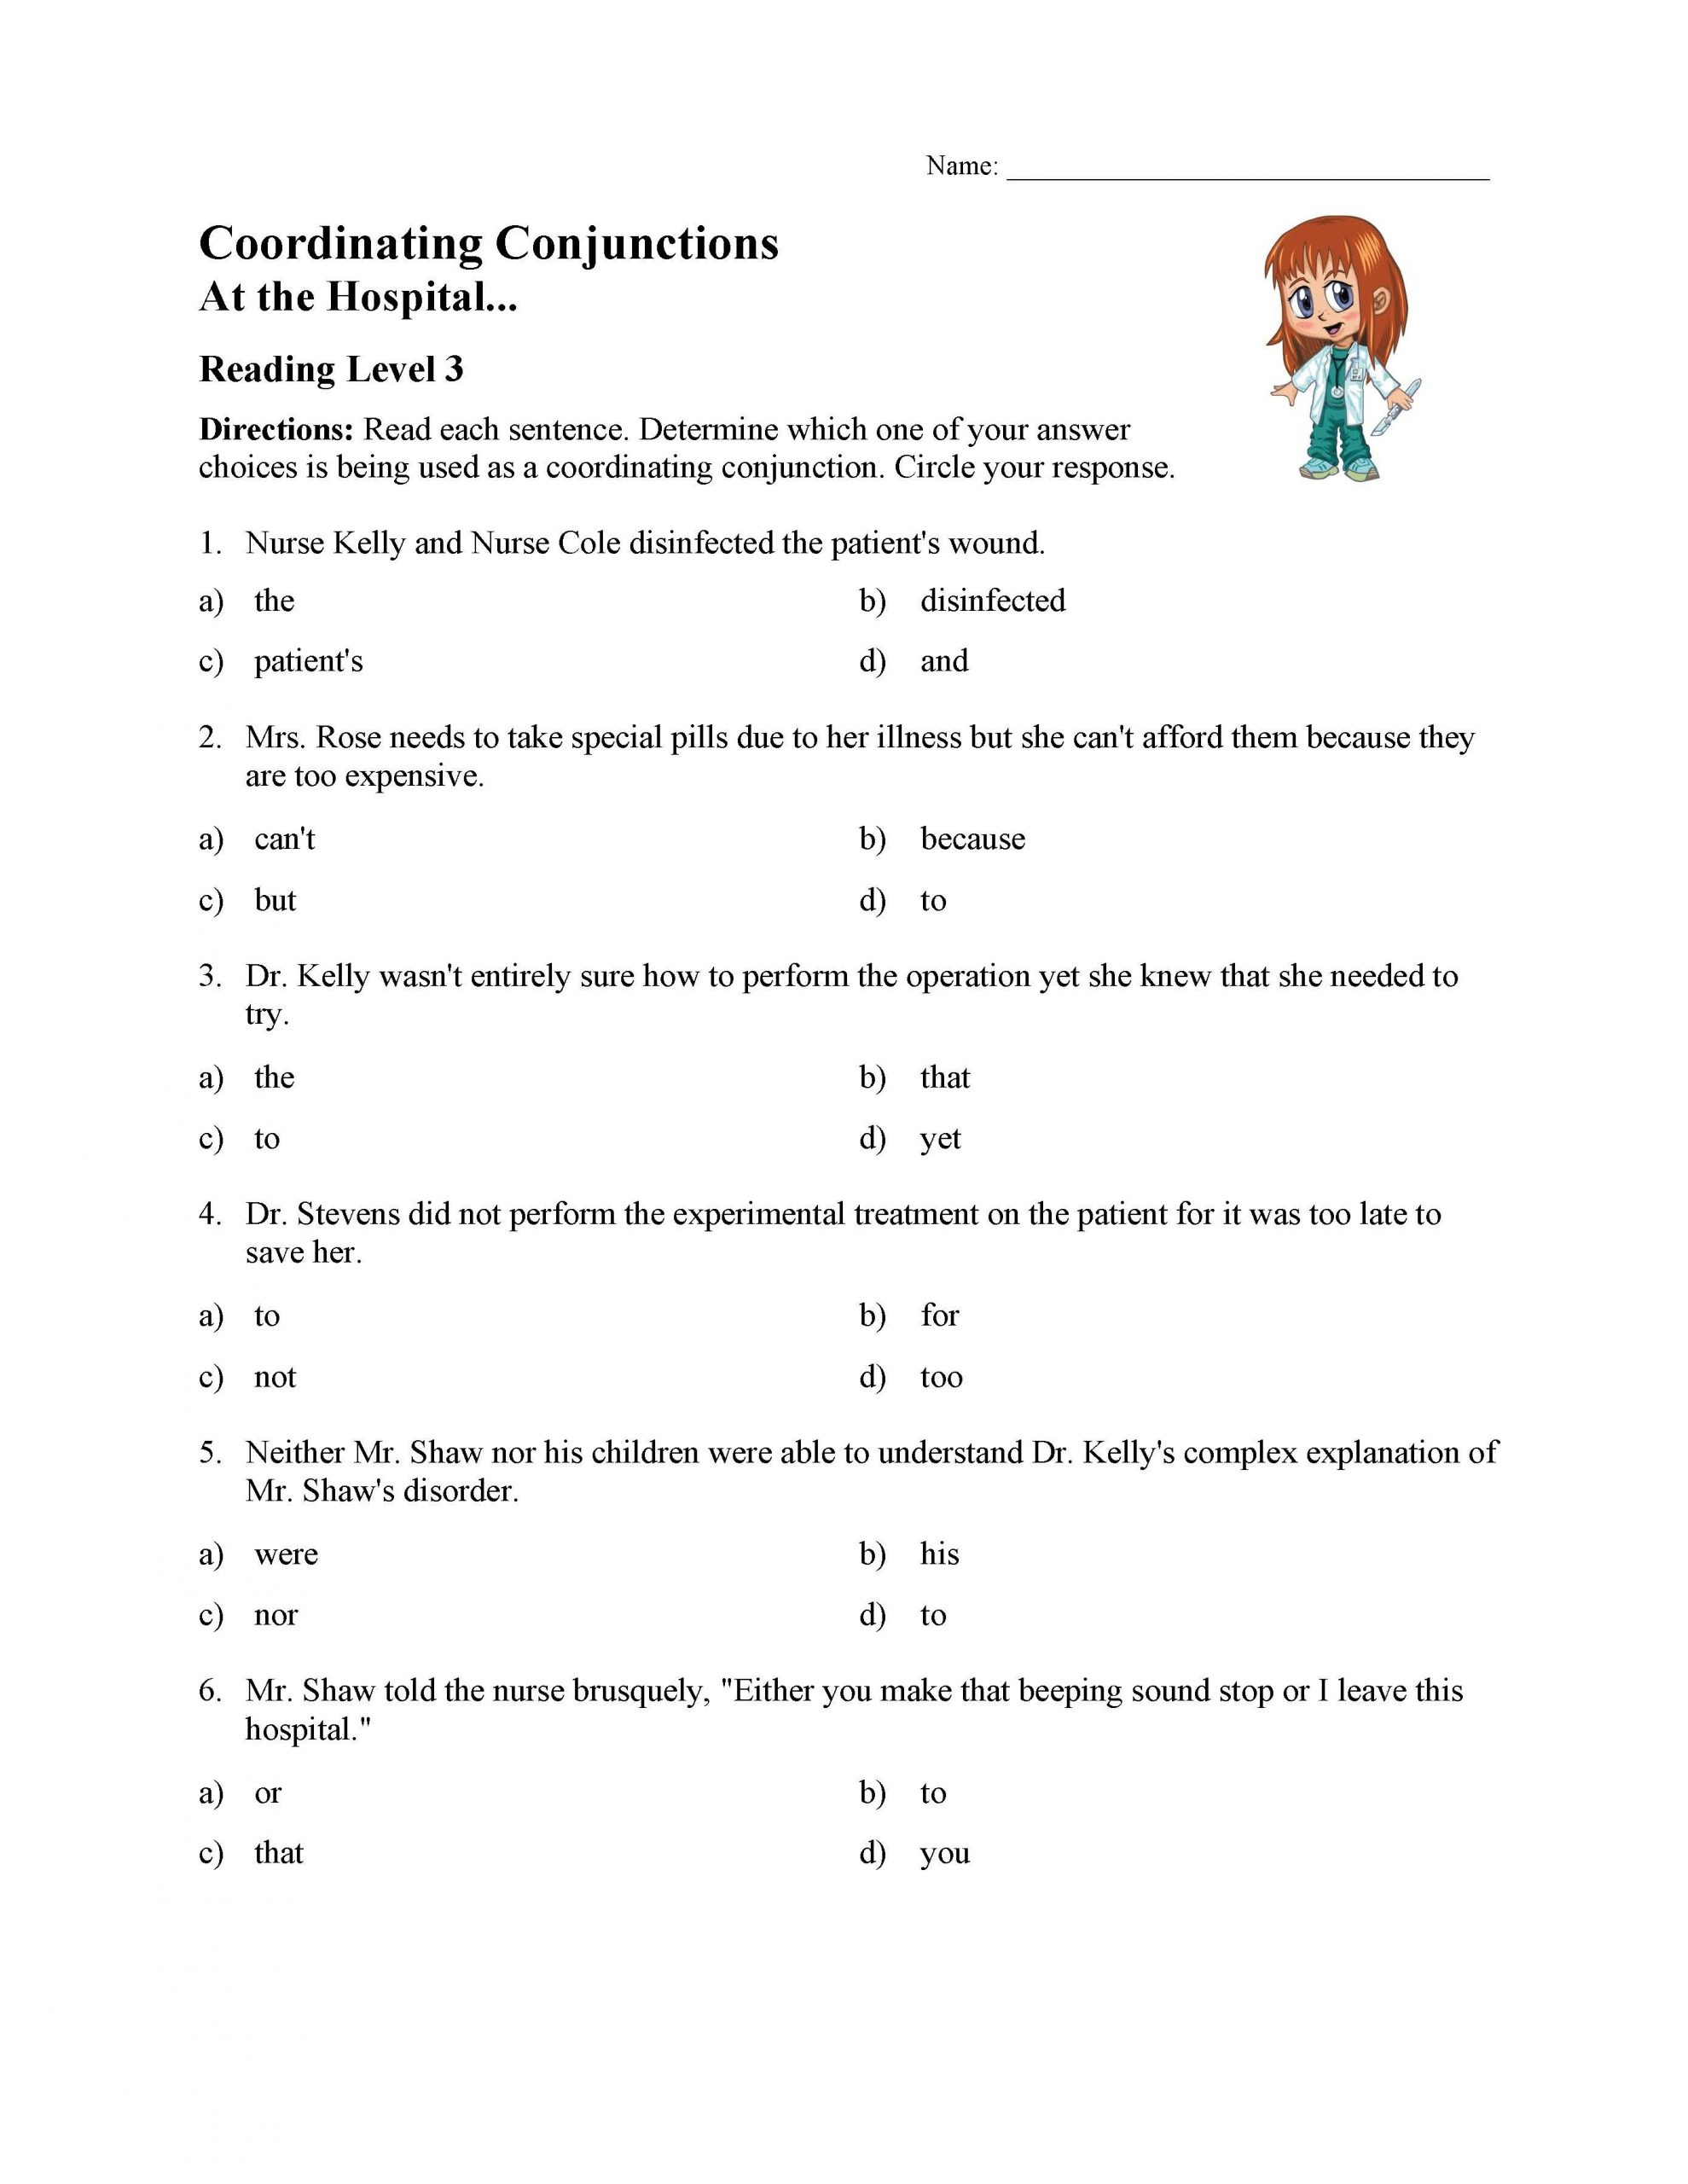 Conjunctions Worksheets for Grade 3 Coordinating Conjunctions Worksheet Reading Level 3